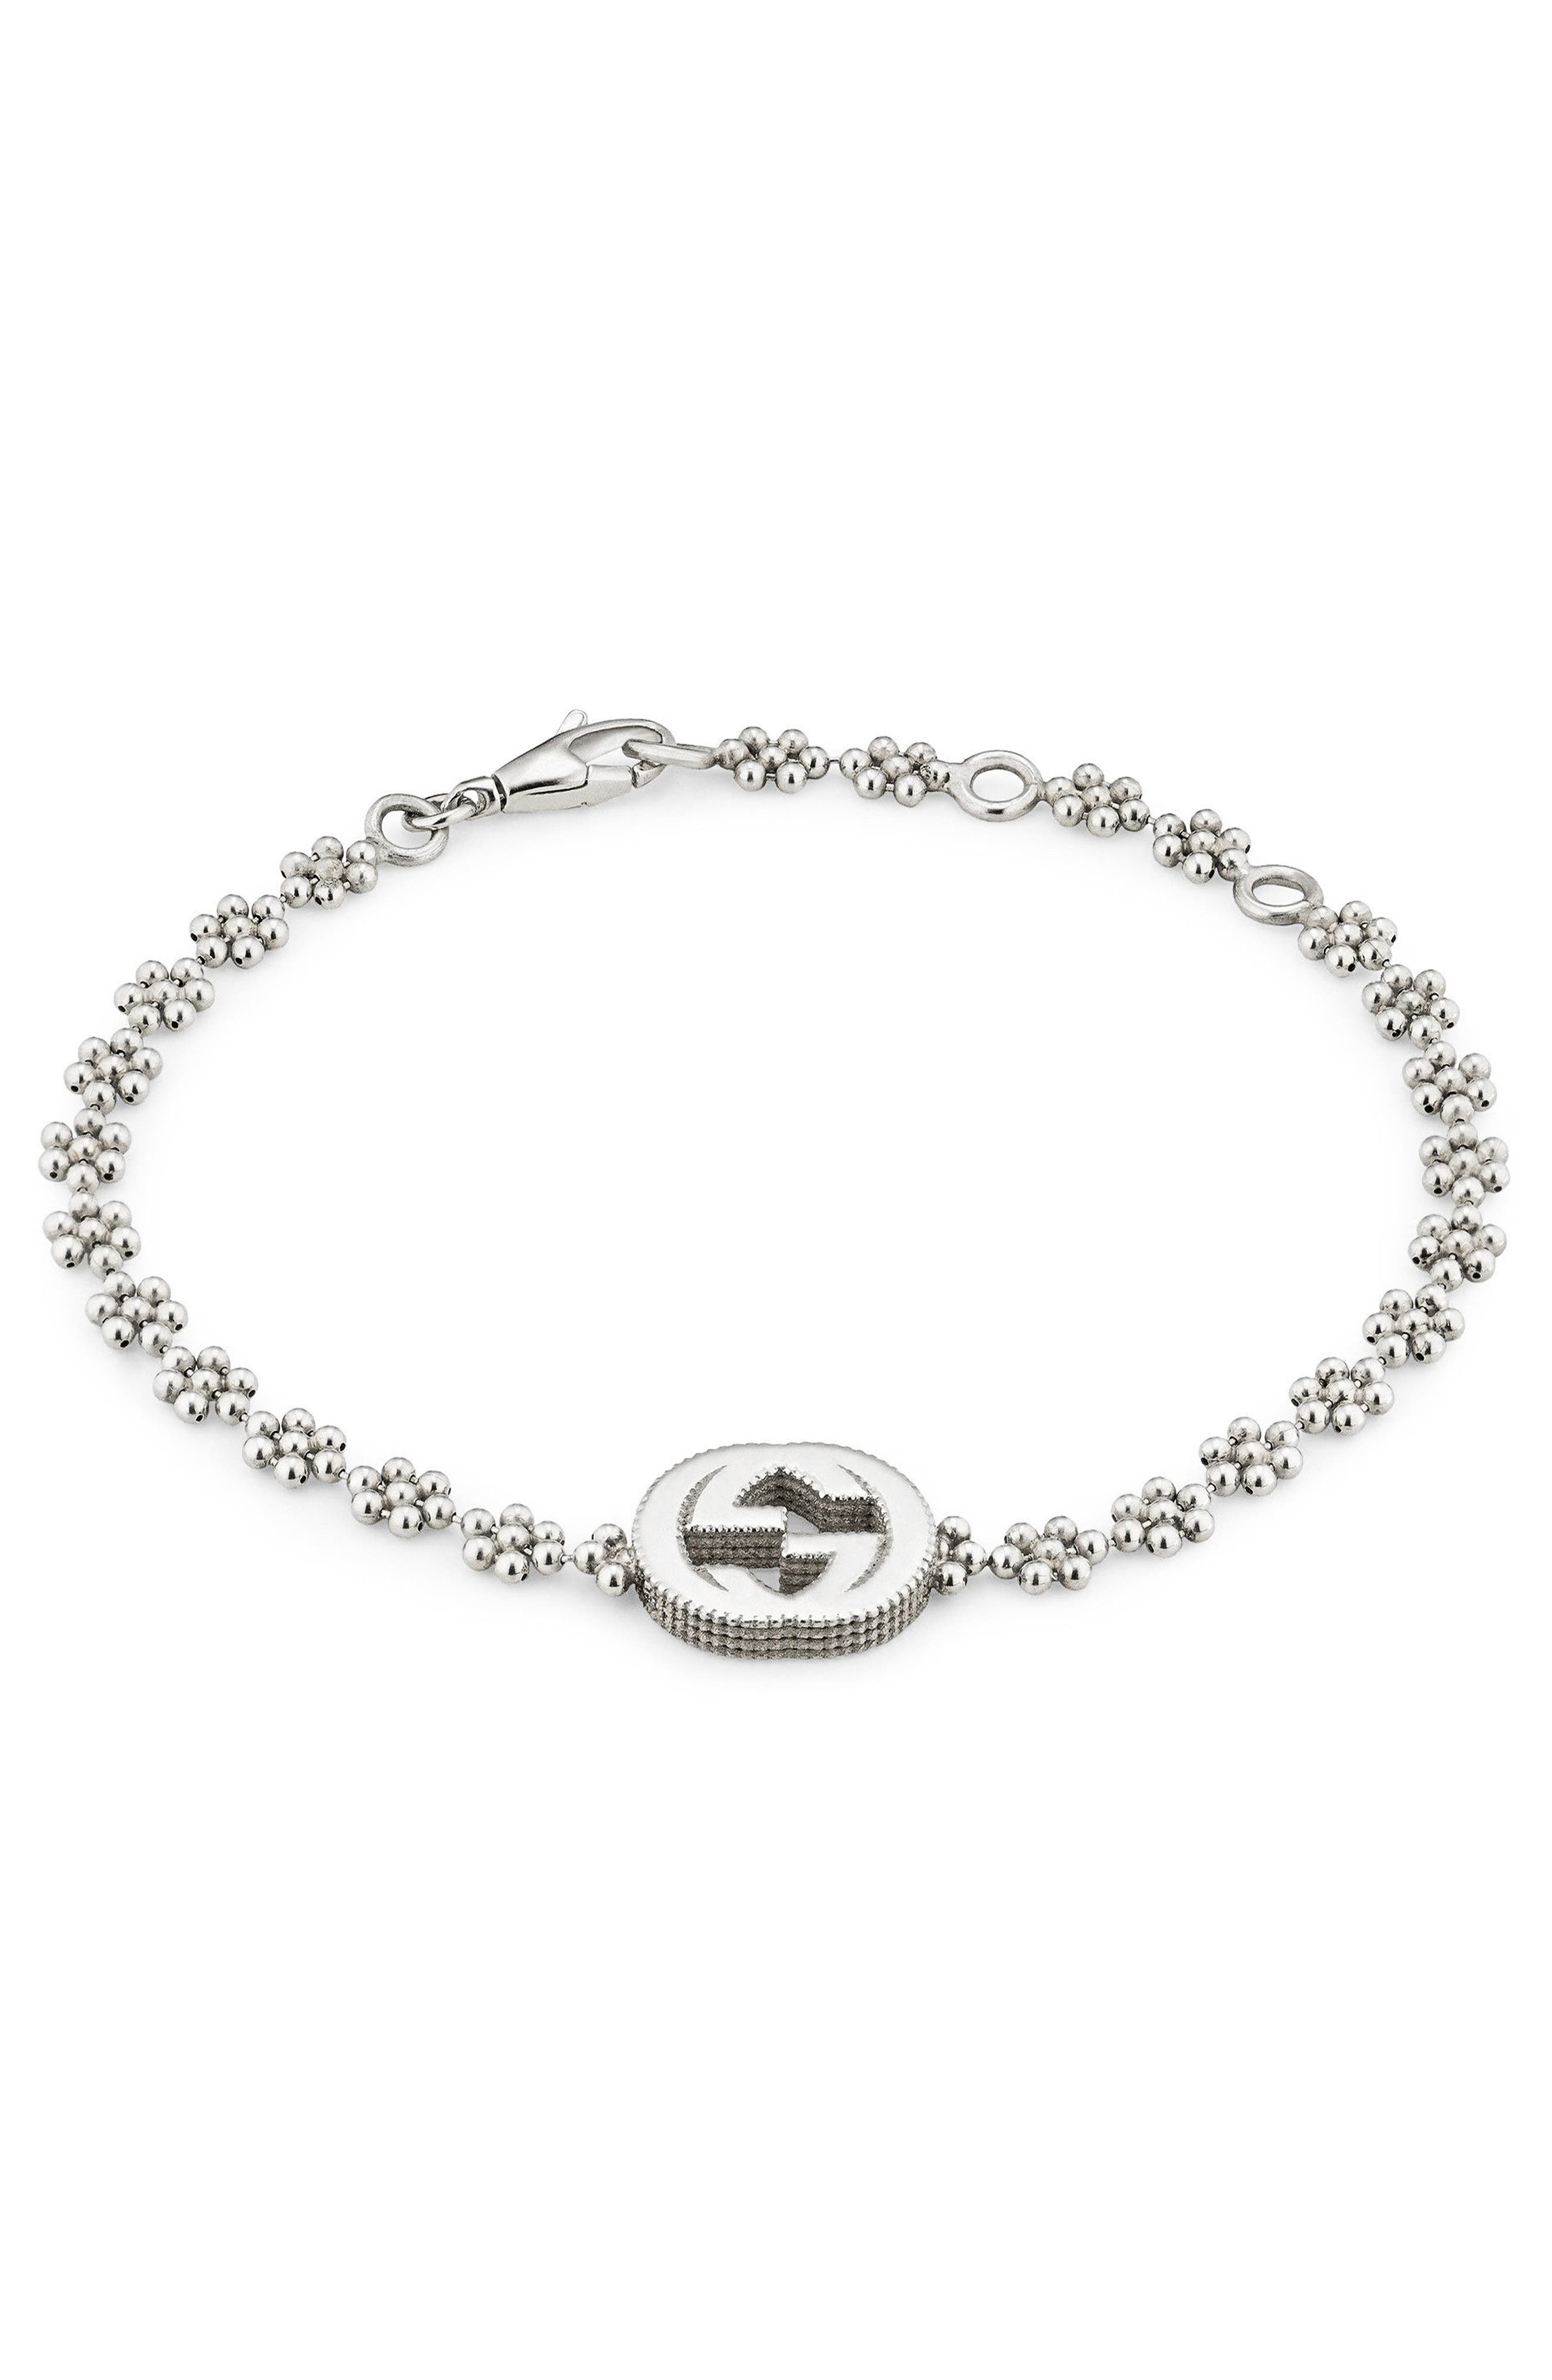 GUCCI, Interlocking-G Bracelet, Main thumbnail 1, color, STERLING SILVER